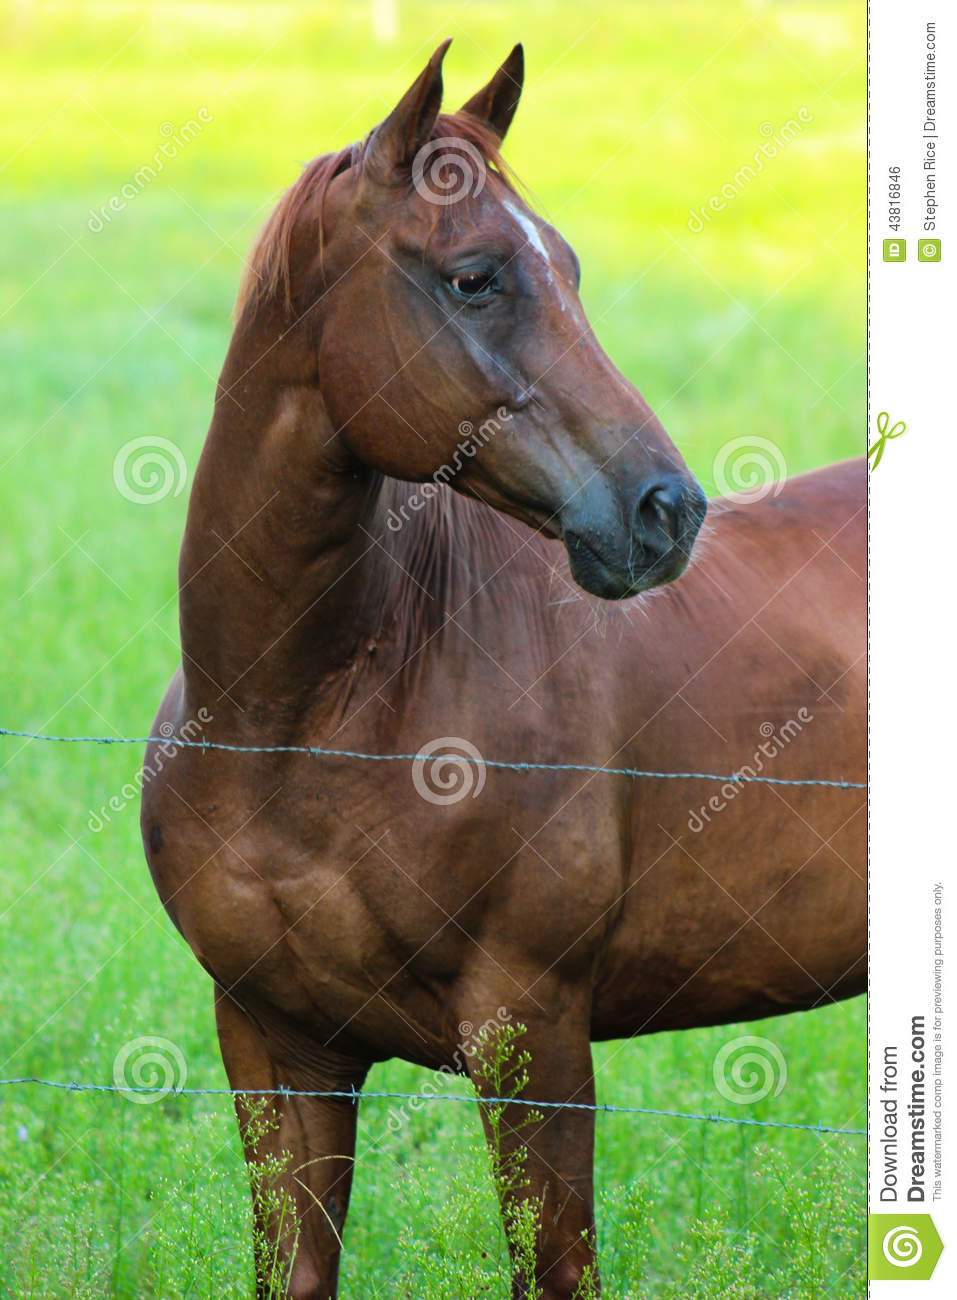 Beautiful Horse Behind Barbed Wire Fence Stock Photo